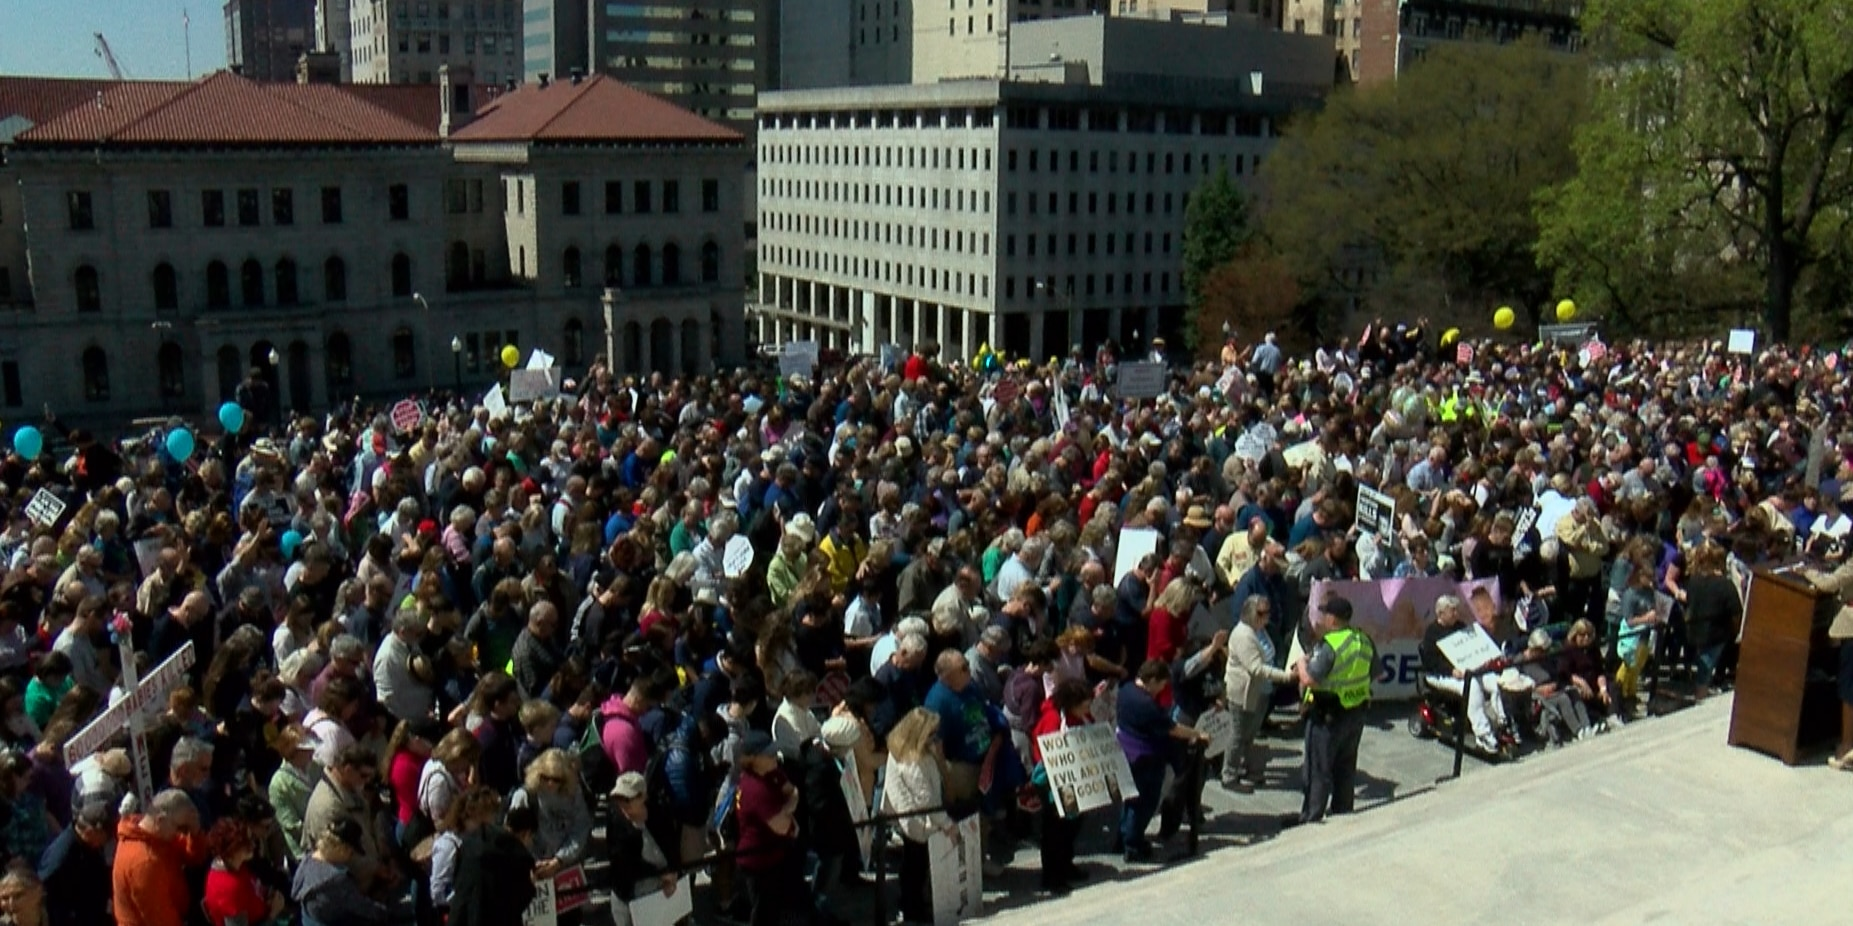 Roughly 6,500 people attend inaugural 'March for Life' rally